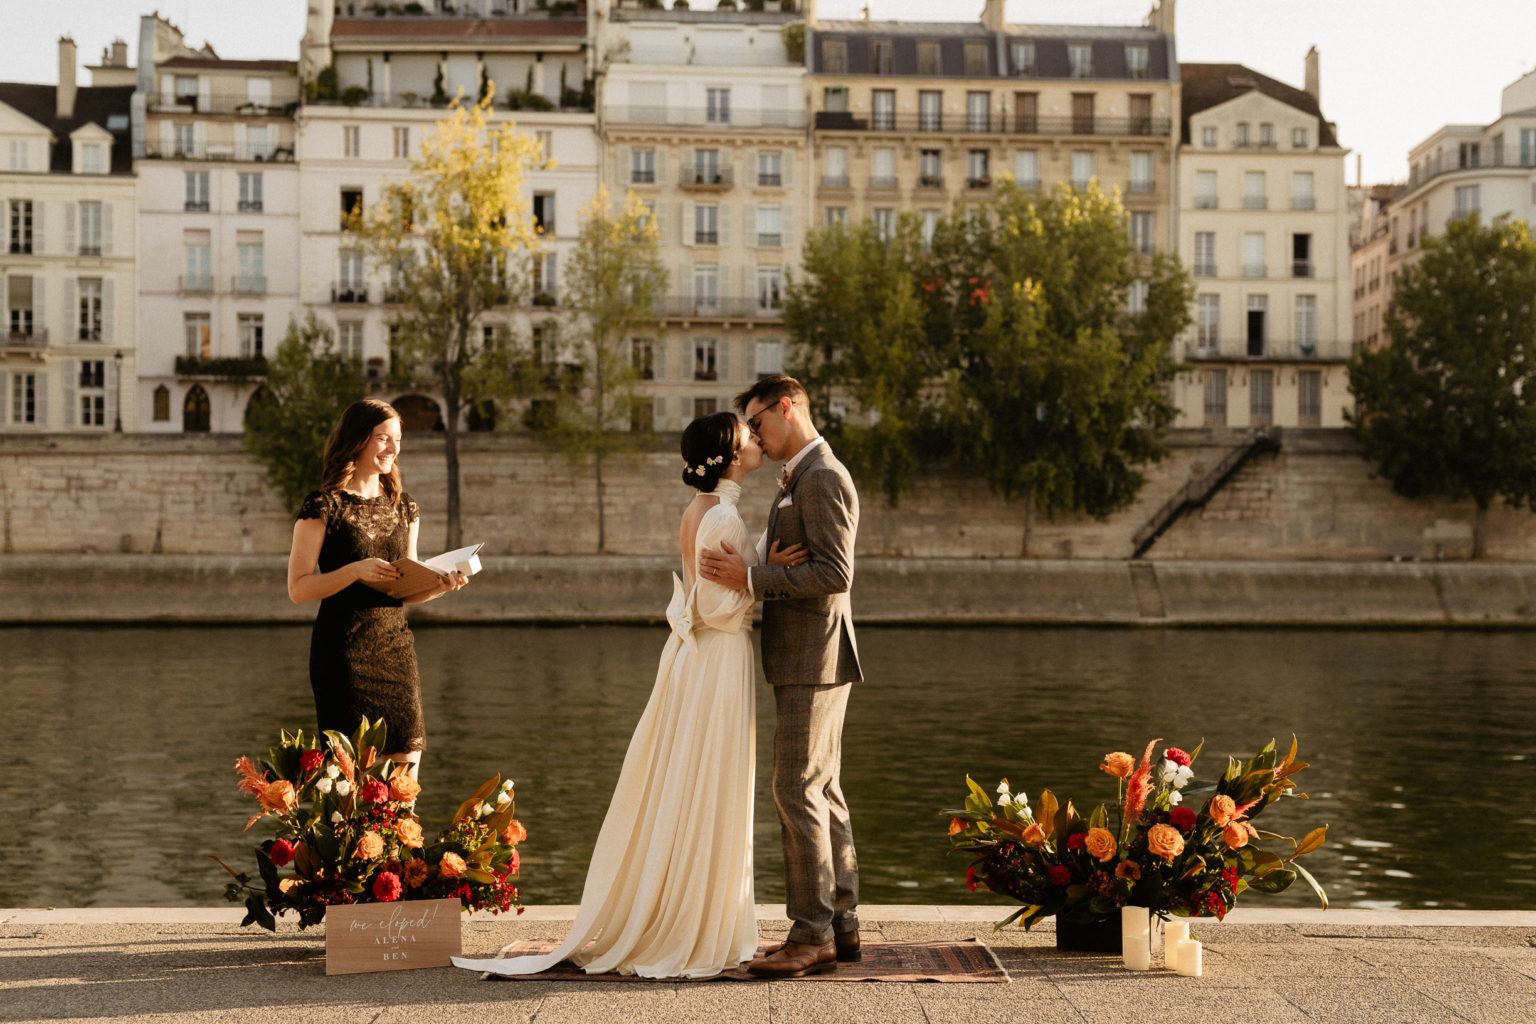 Paris Elopement by The Seine River